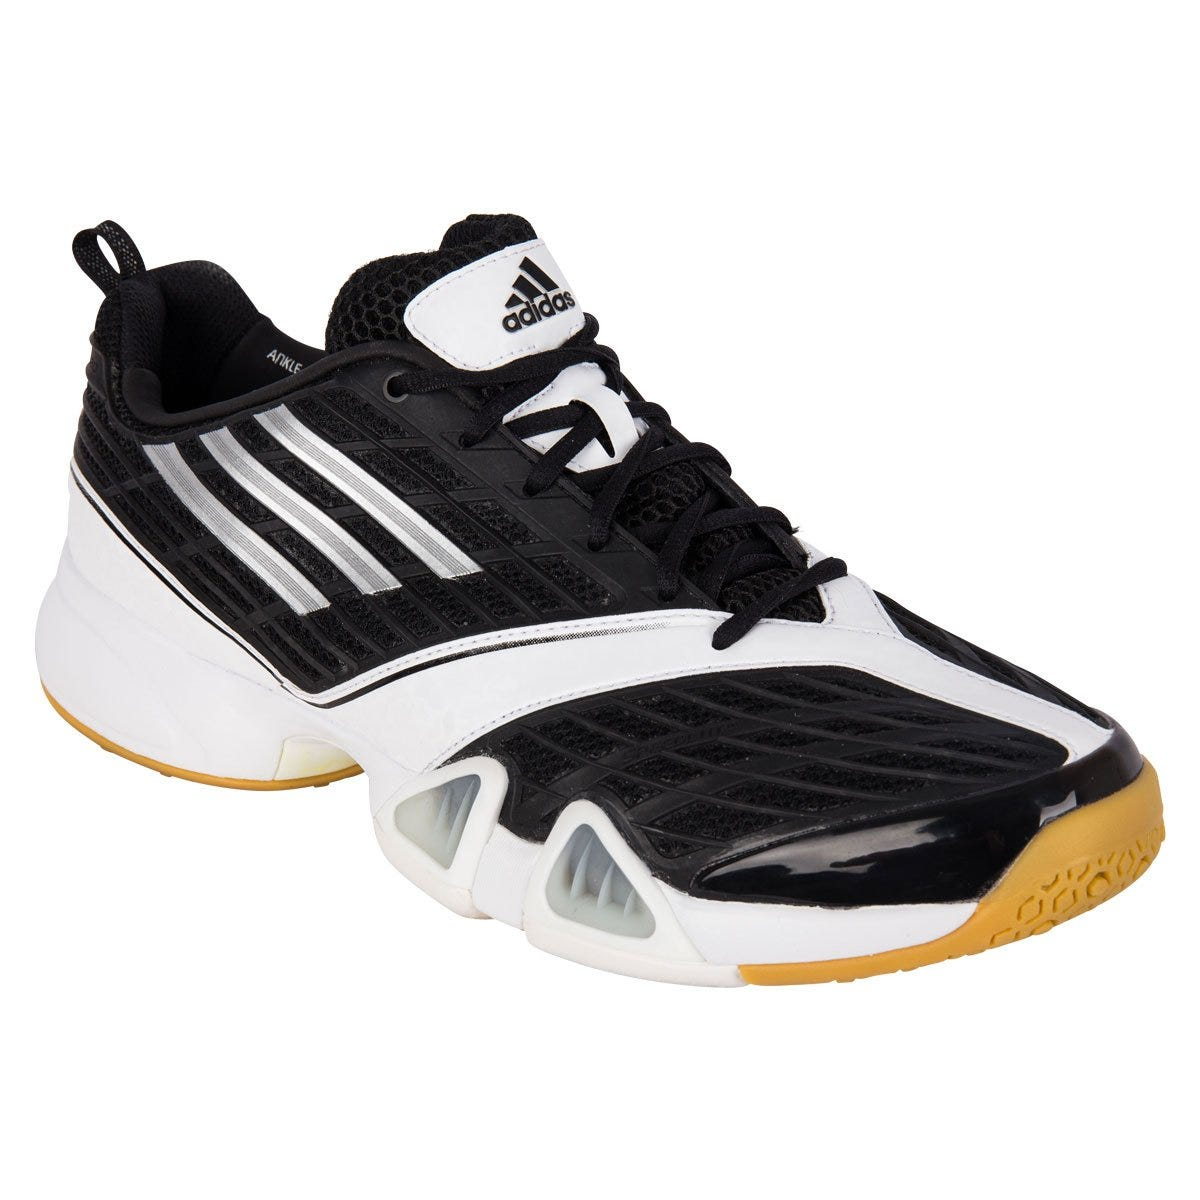 7220d9f6ef4a  94.99 More Details · Adidas Volleio Women s Shoes - Black Silver White